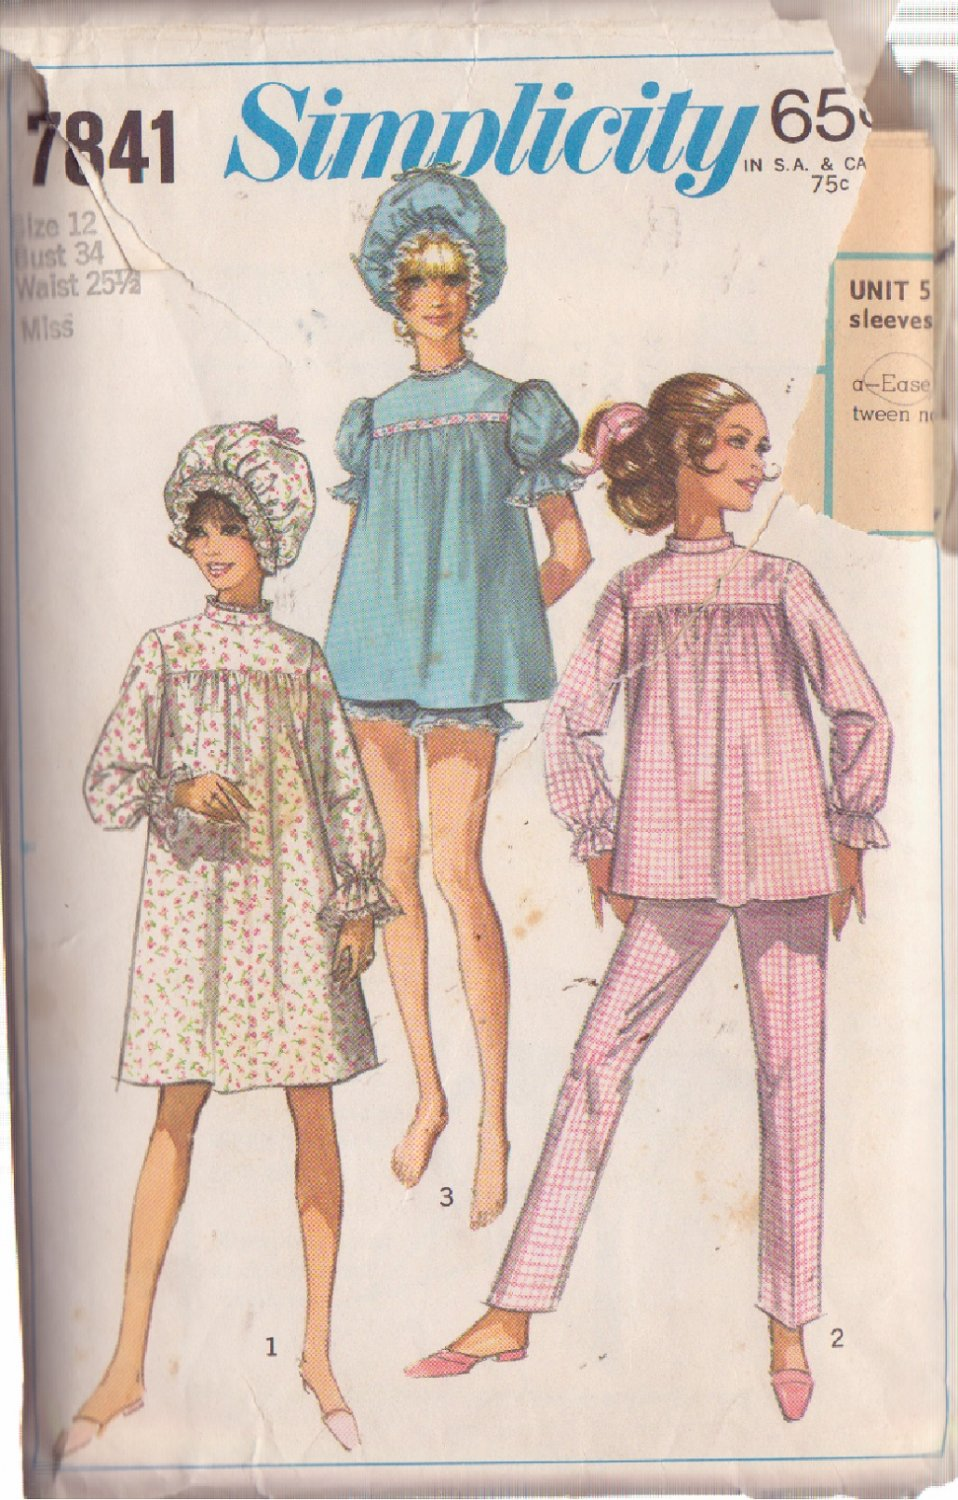 SIMPLICITY PATTERN 7841 SZ 12 MISSES' PAJAMAS IN 2 LENGTHS, NIGHTGOWN CURLER CAP